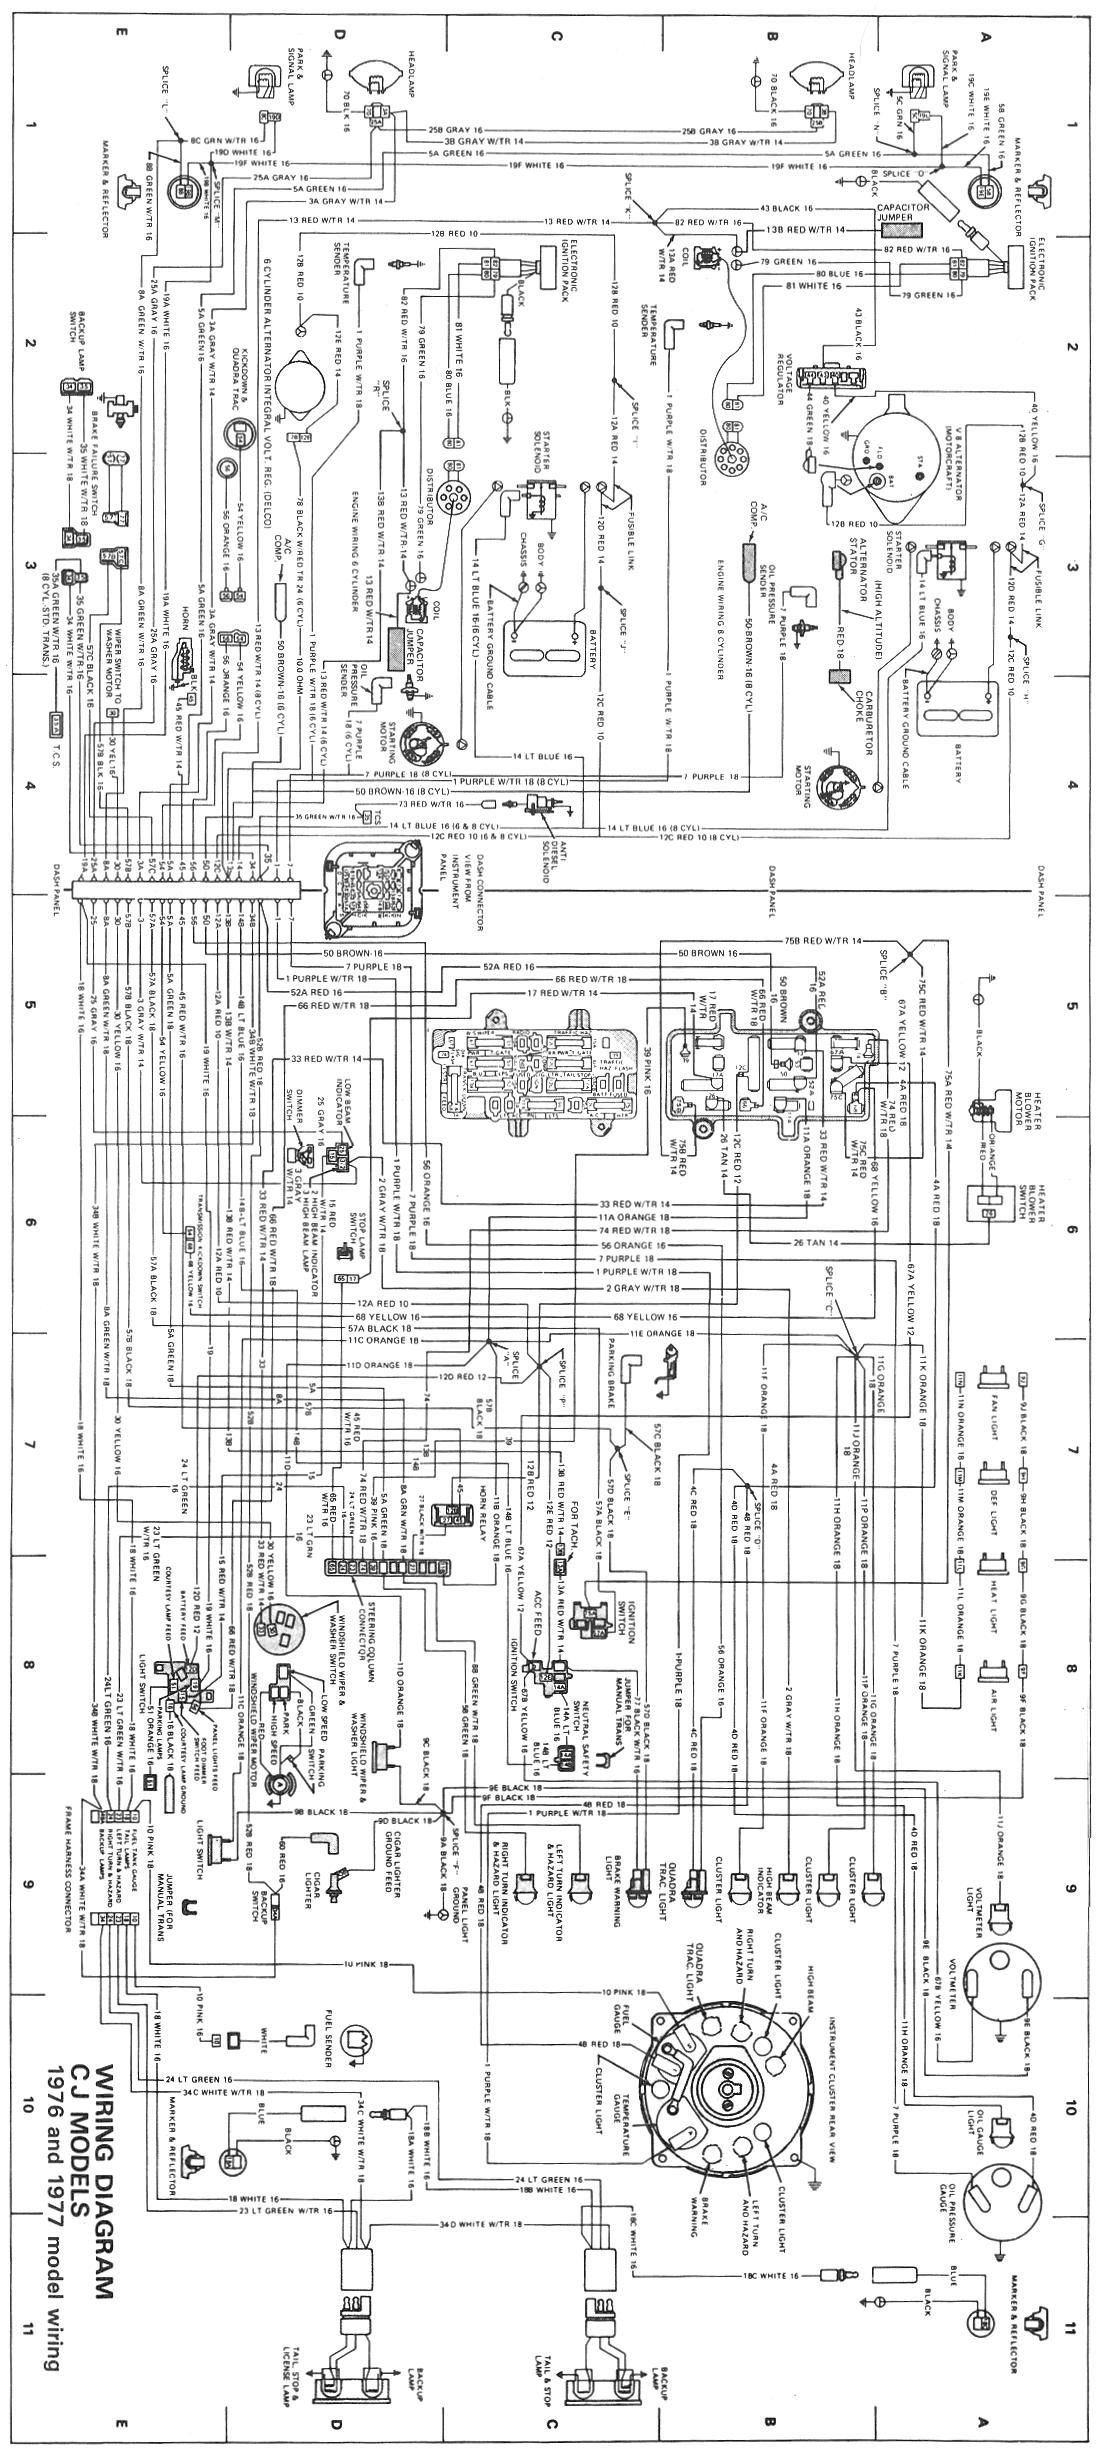 8d25ded6e3673519e155875e09844e5e cj wiring diagram 1976 1977 jpg 1,100�2,459 pixels 1976 jeep cj5  at gsmx.co